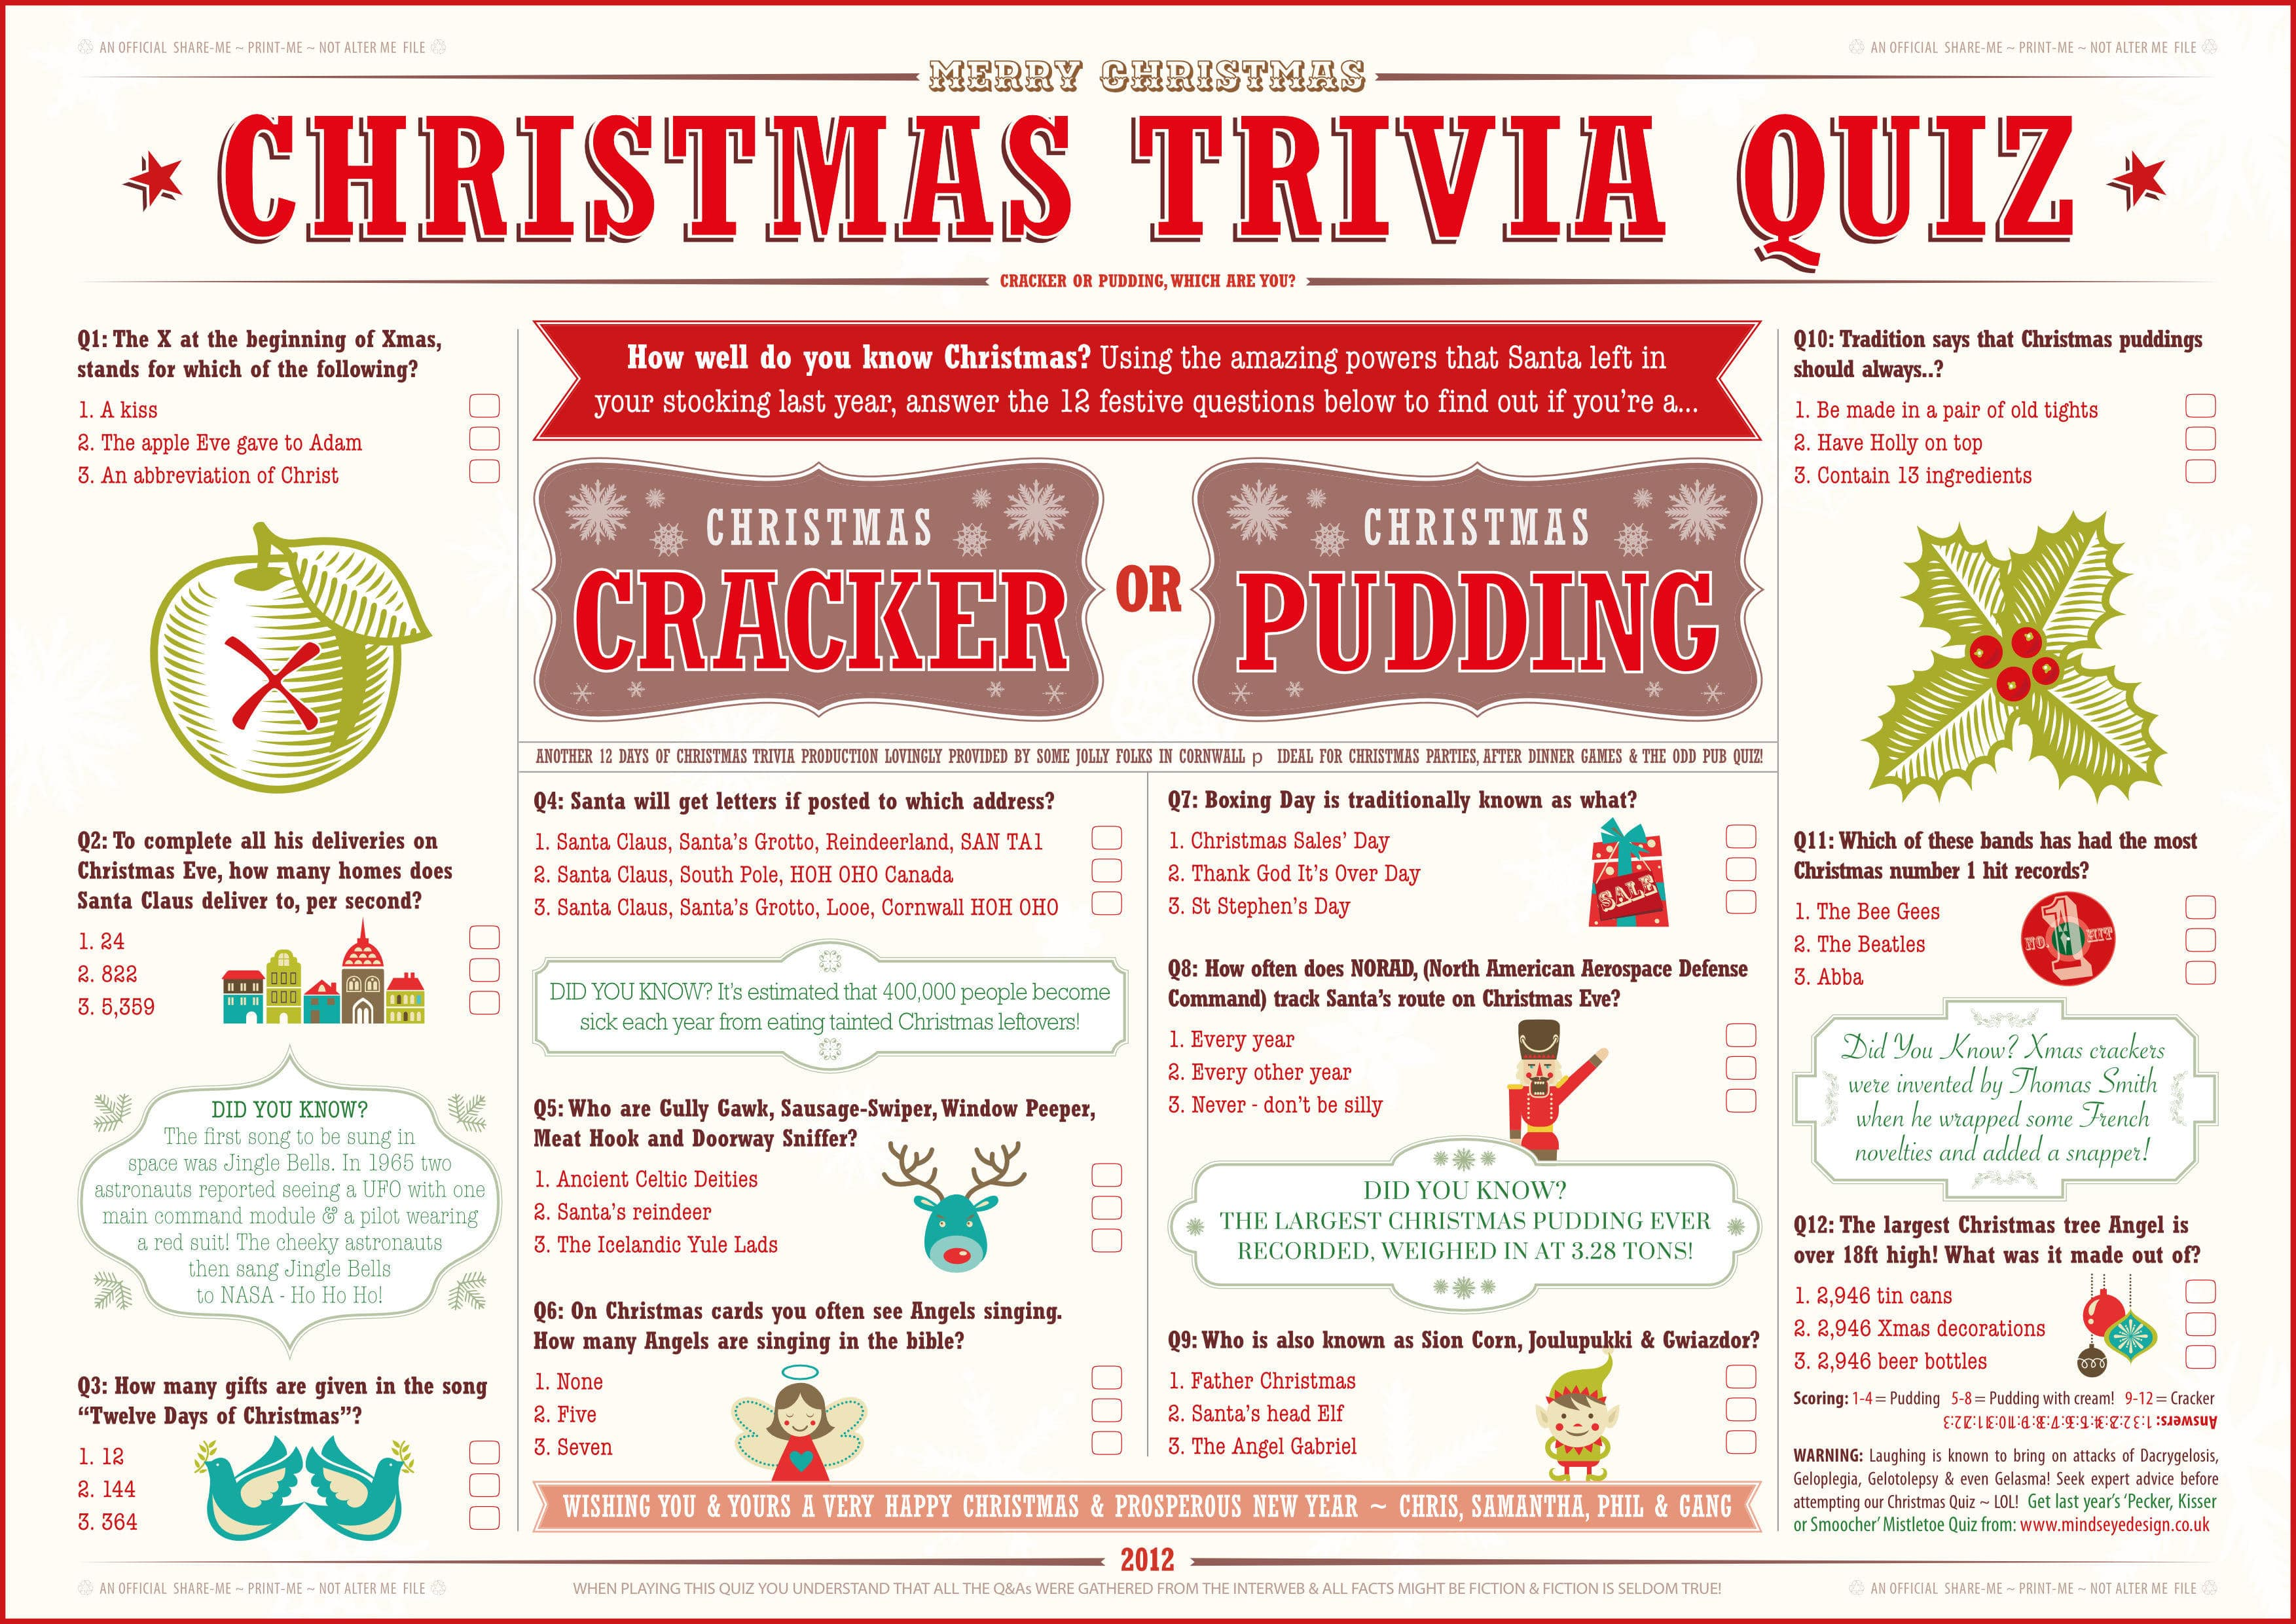 3 Family Friendly Christmas Quiz Downloads